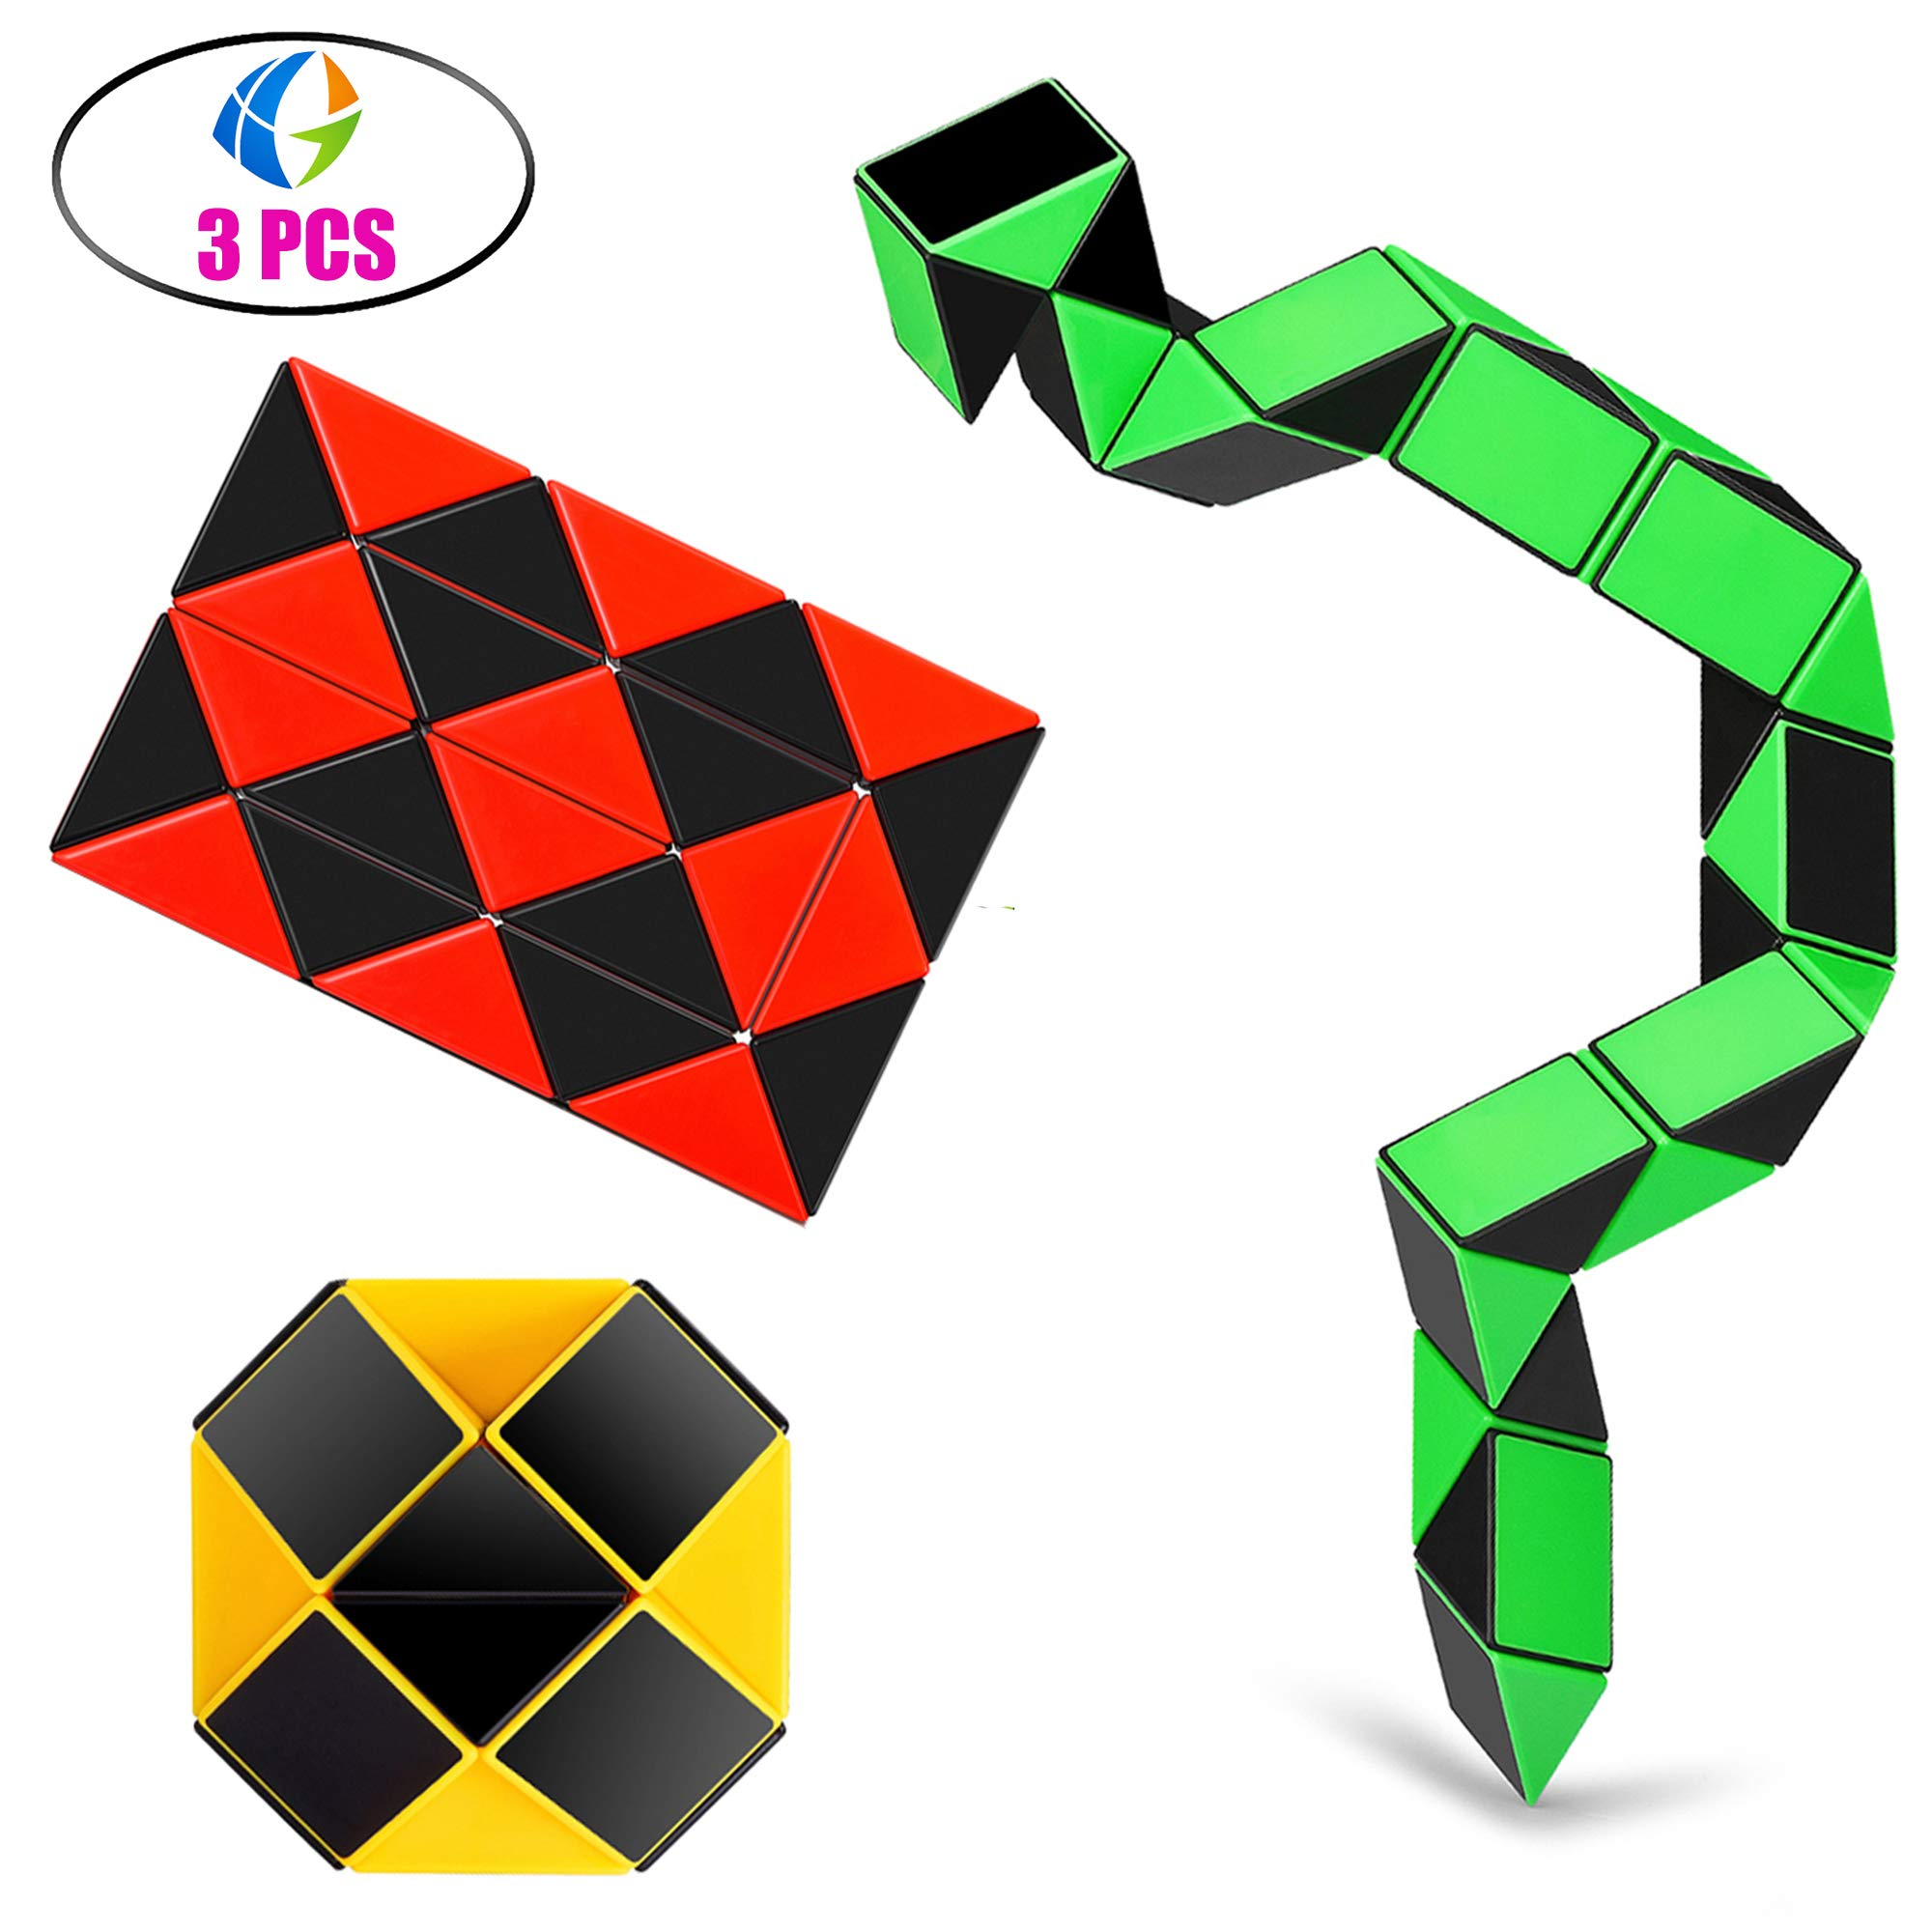 Ganowo Speed Cube Snake Ruler Cube Puzzle Pack | 24 Wedges Twist Puzzle Toys | 3 Magic Snake Cubes Collection in 1 Box | Stickerless Cube Toys